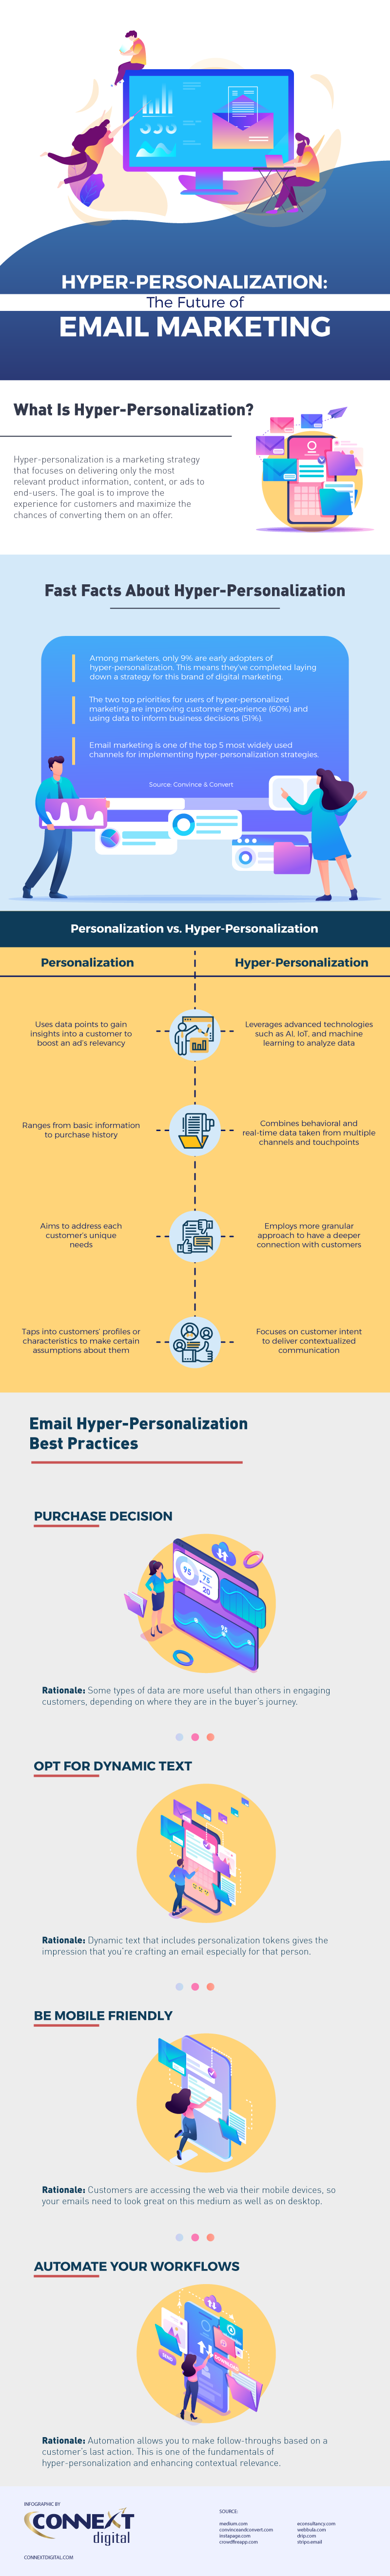 Hyper Personalization - The Future of Email Marketing-Infographic